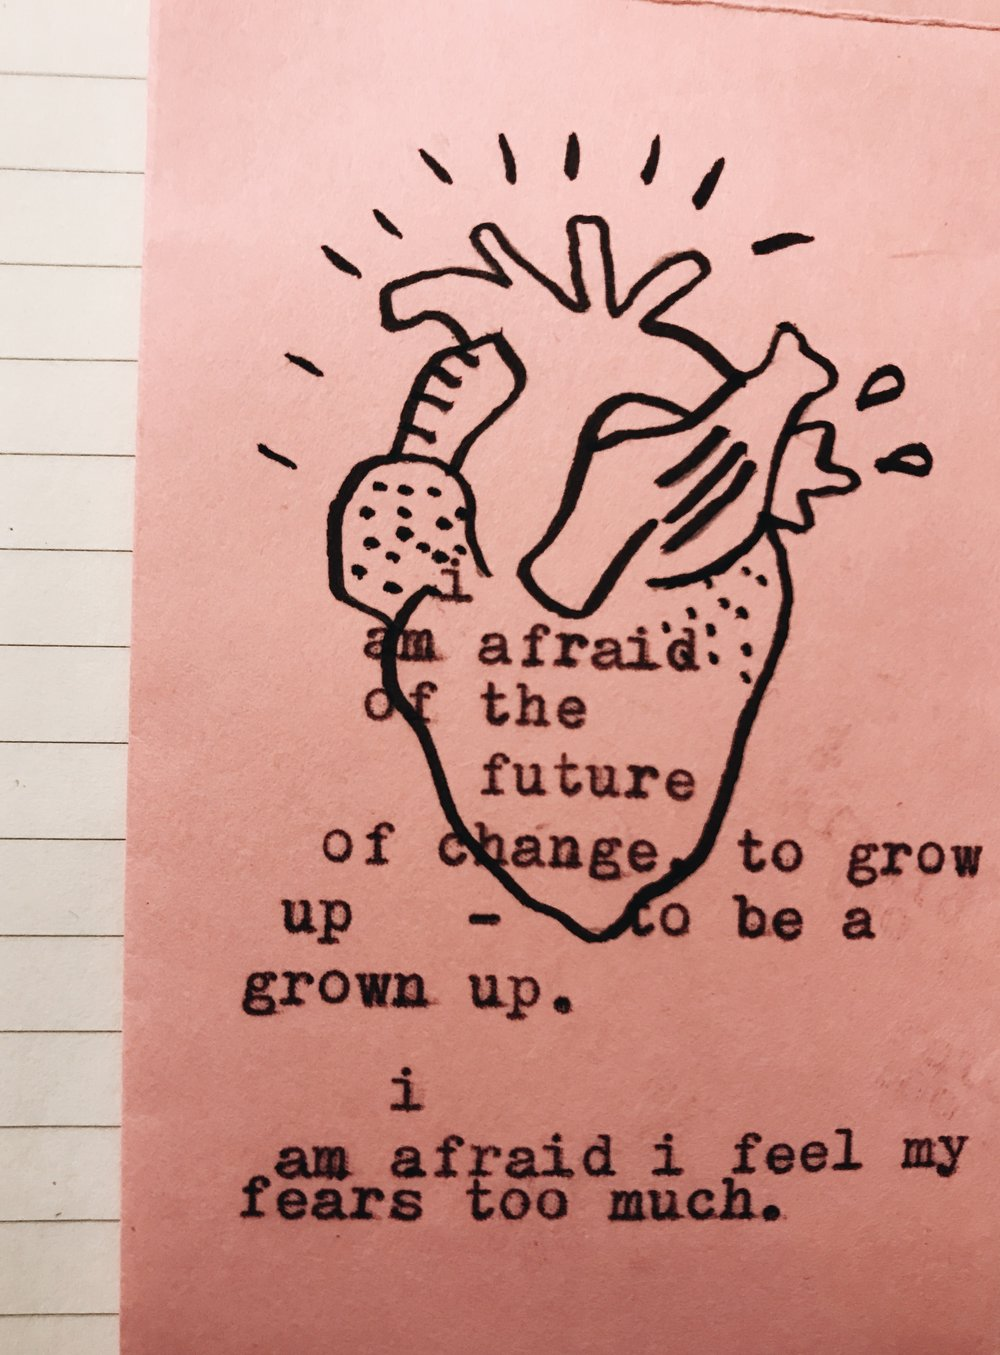 I Feel My Fears Too Much (the heart). - I Amafraid.Of the future.Of change.To growup - to be agrownup.I AmafraidI feel my fears too much.